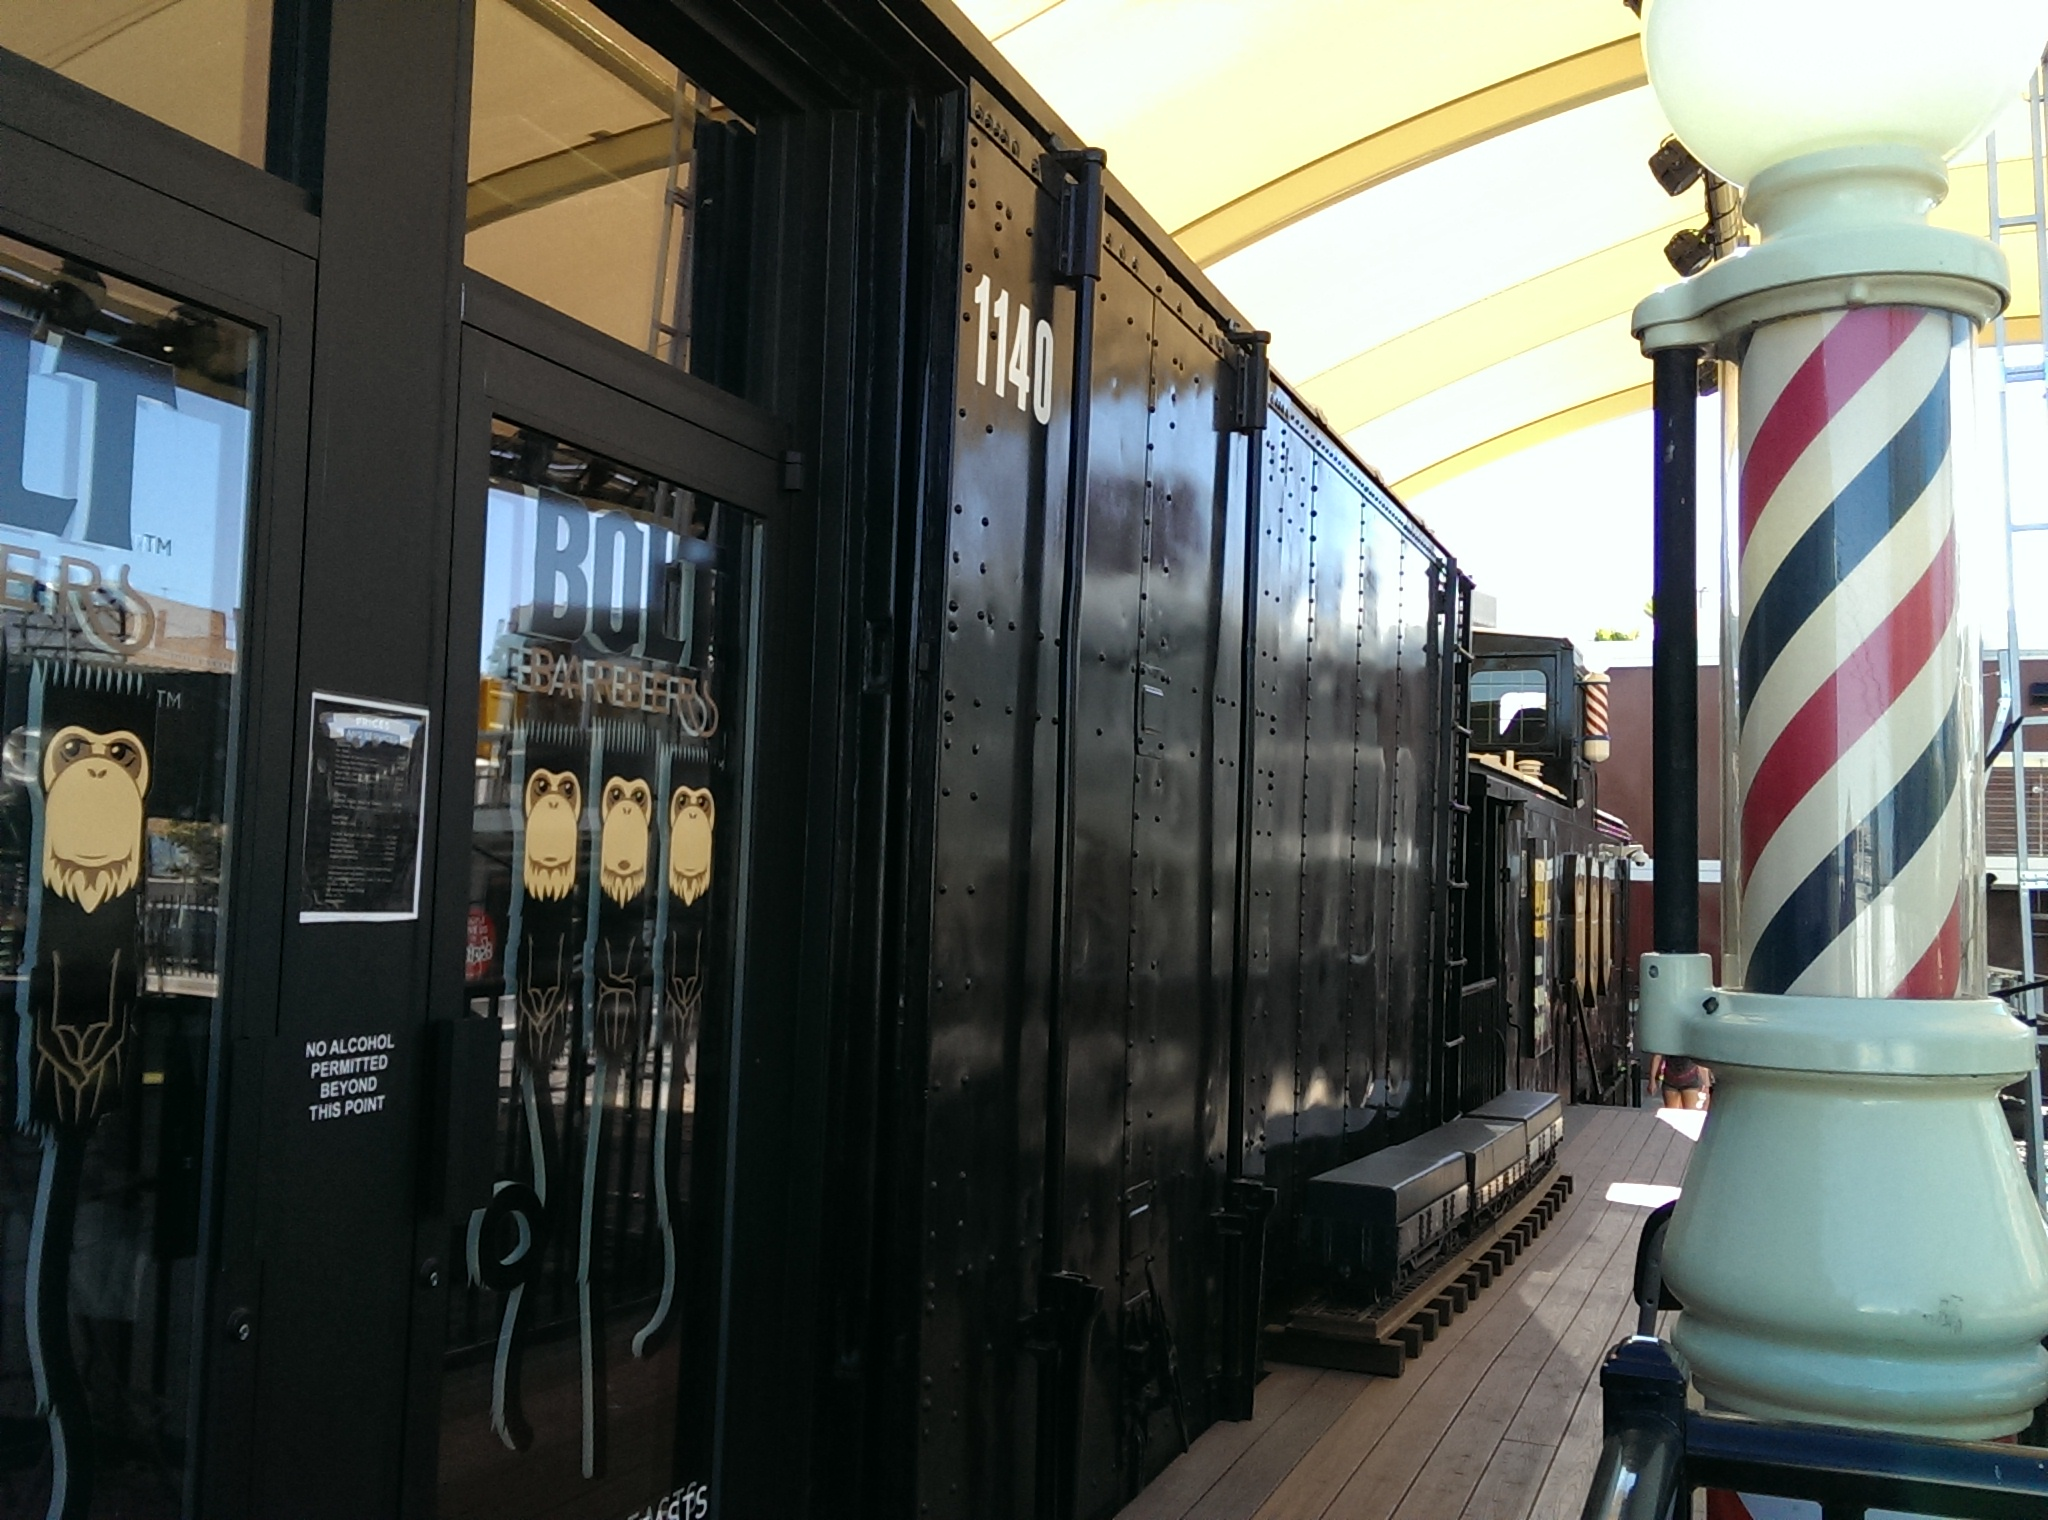 Downtown Container Park Las Vegas barber shop Flickr - Photo Sharing ...